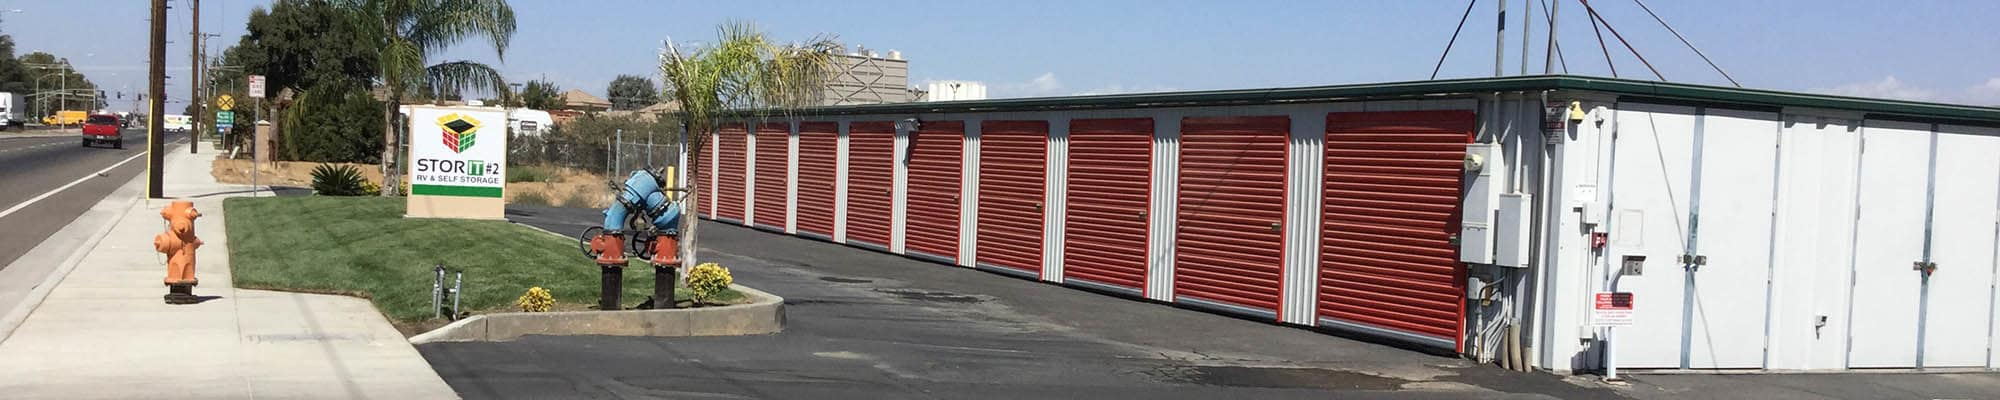 Contact us at the self storage facility in Stor It Self Storage